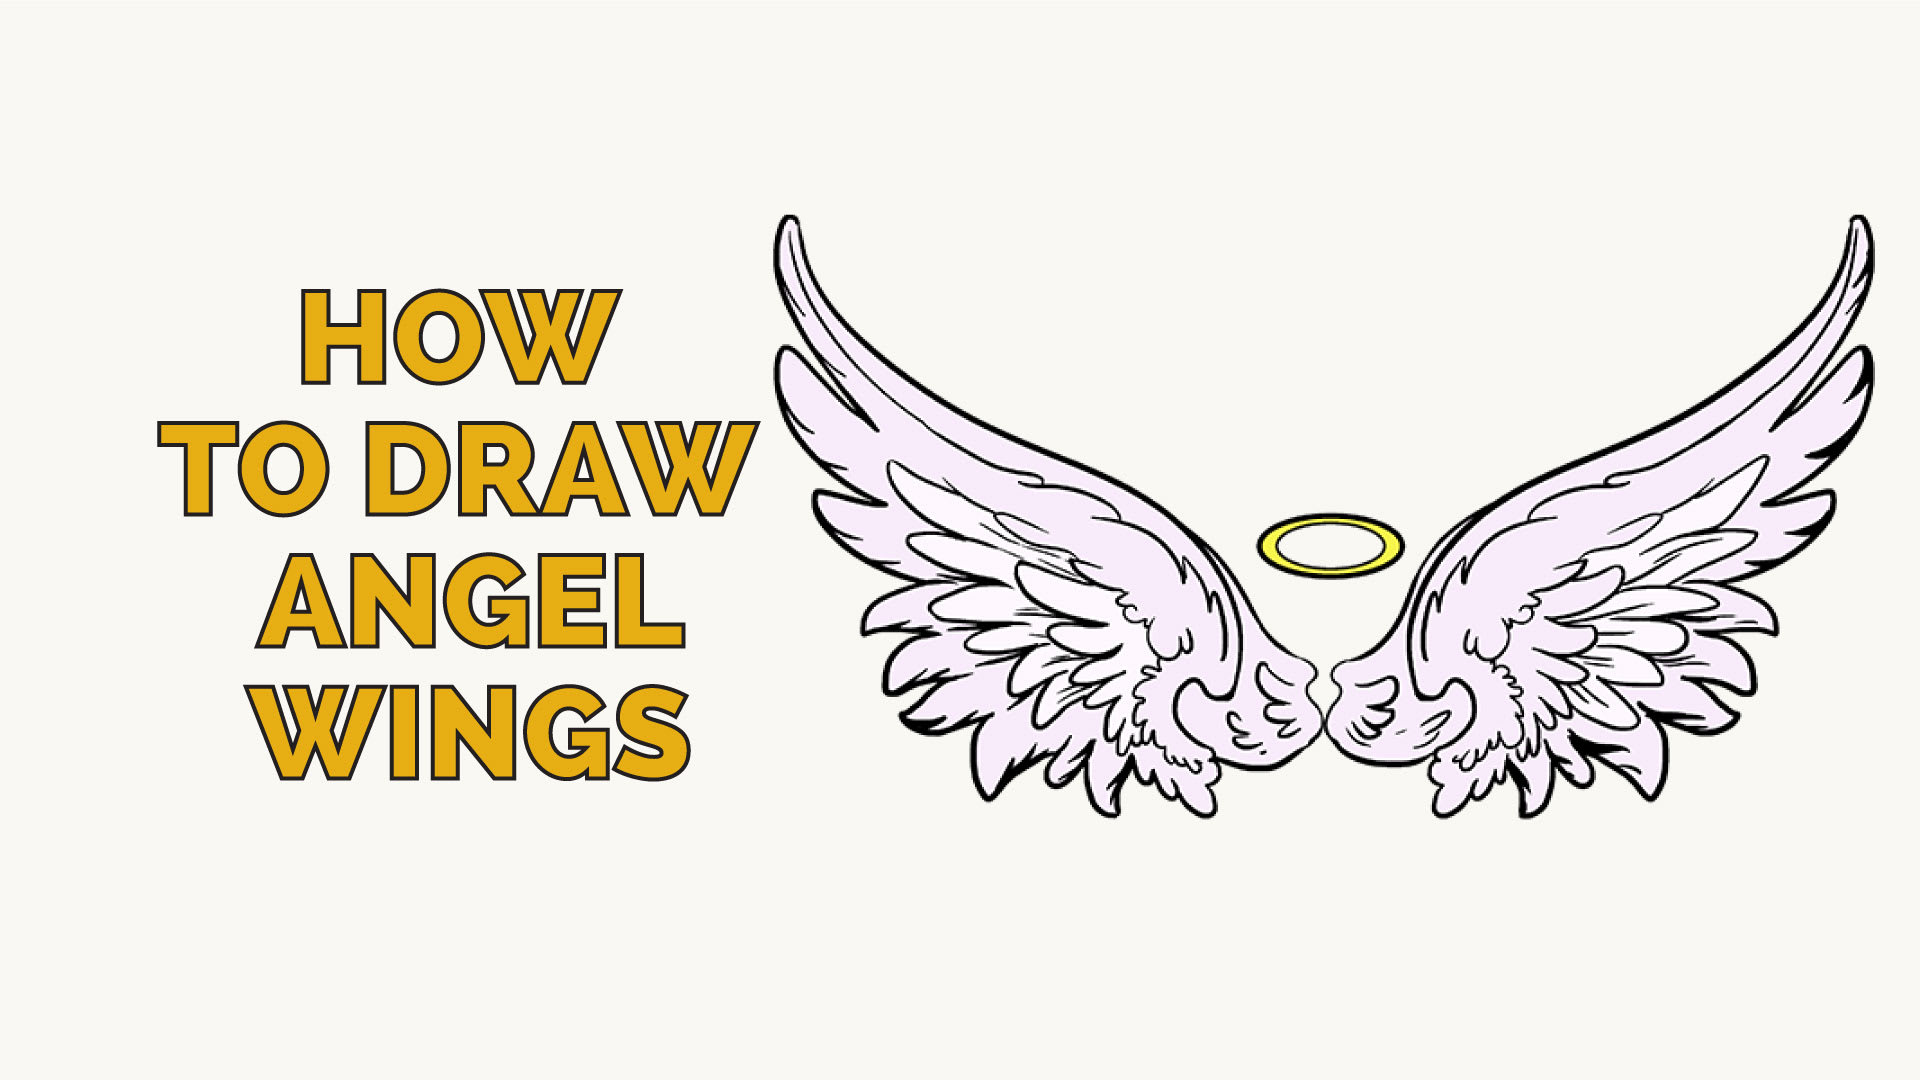 How To Draw Angel Wings In A Few Easy Steps Easy Drawing Guides